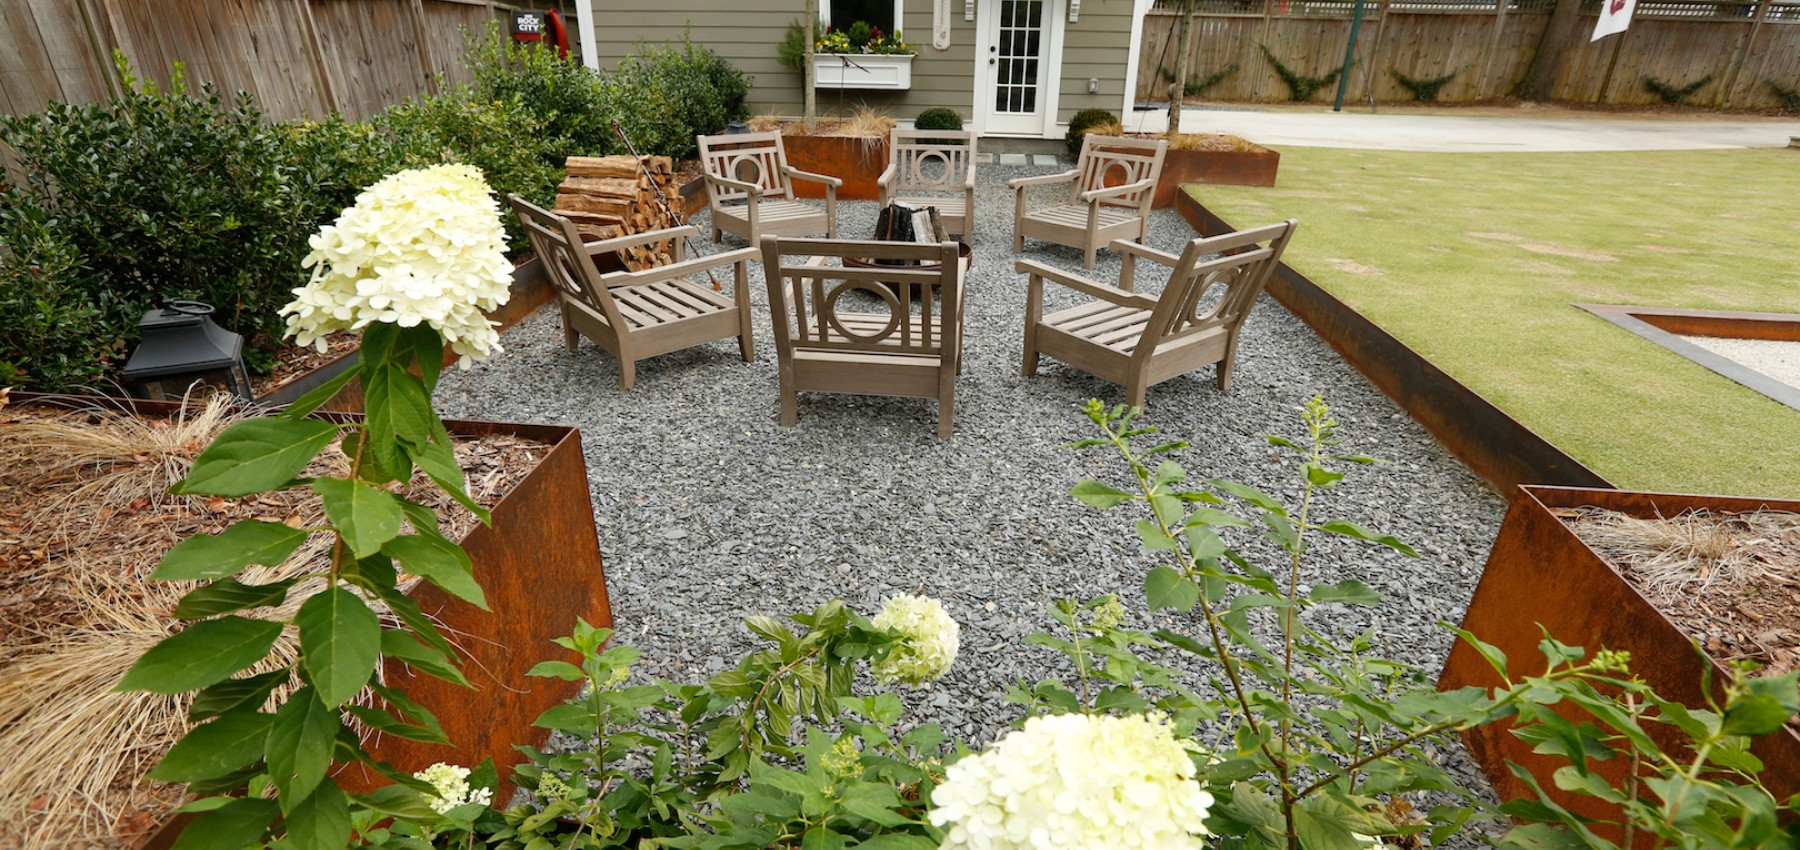 How Much Does Landscaping Cost regarding 11 Some of the Coolest Concepts of How to Upgrade How Much Does It Cost To Landscape A Backyard